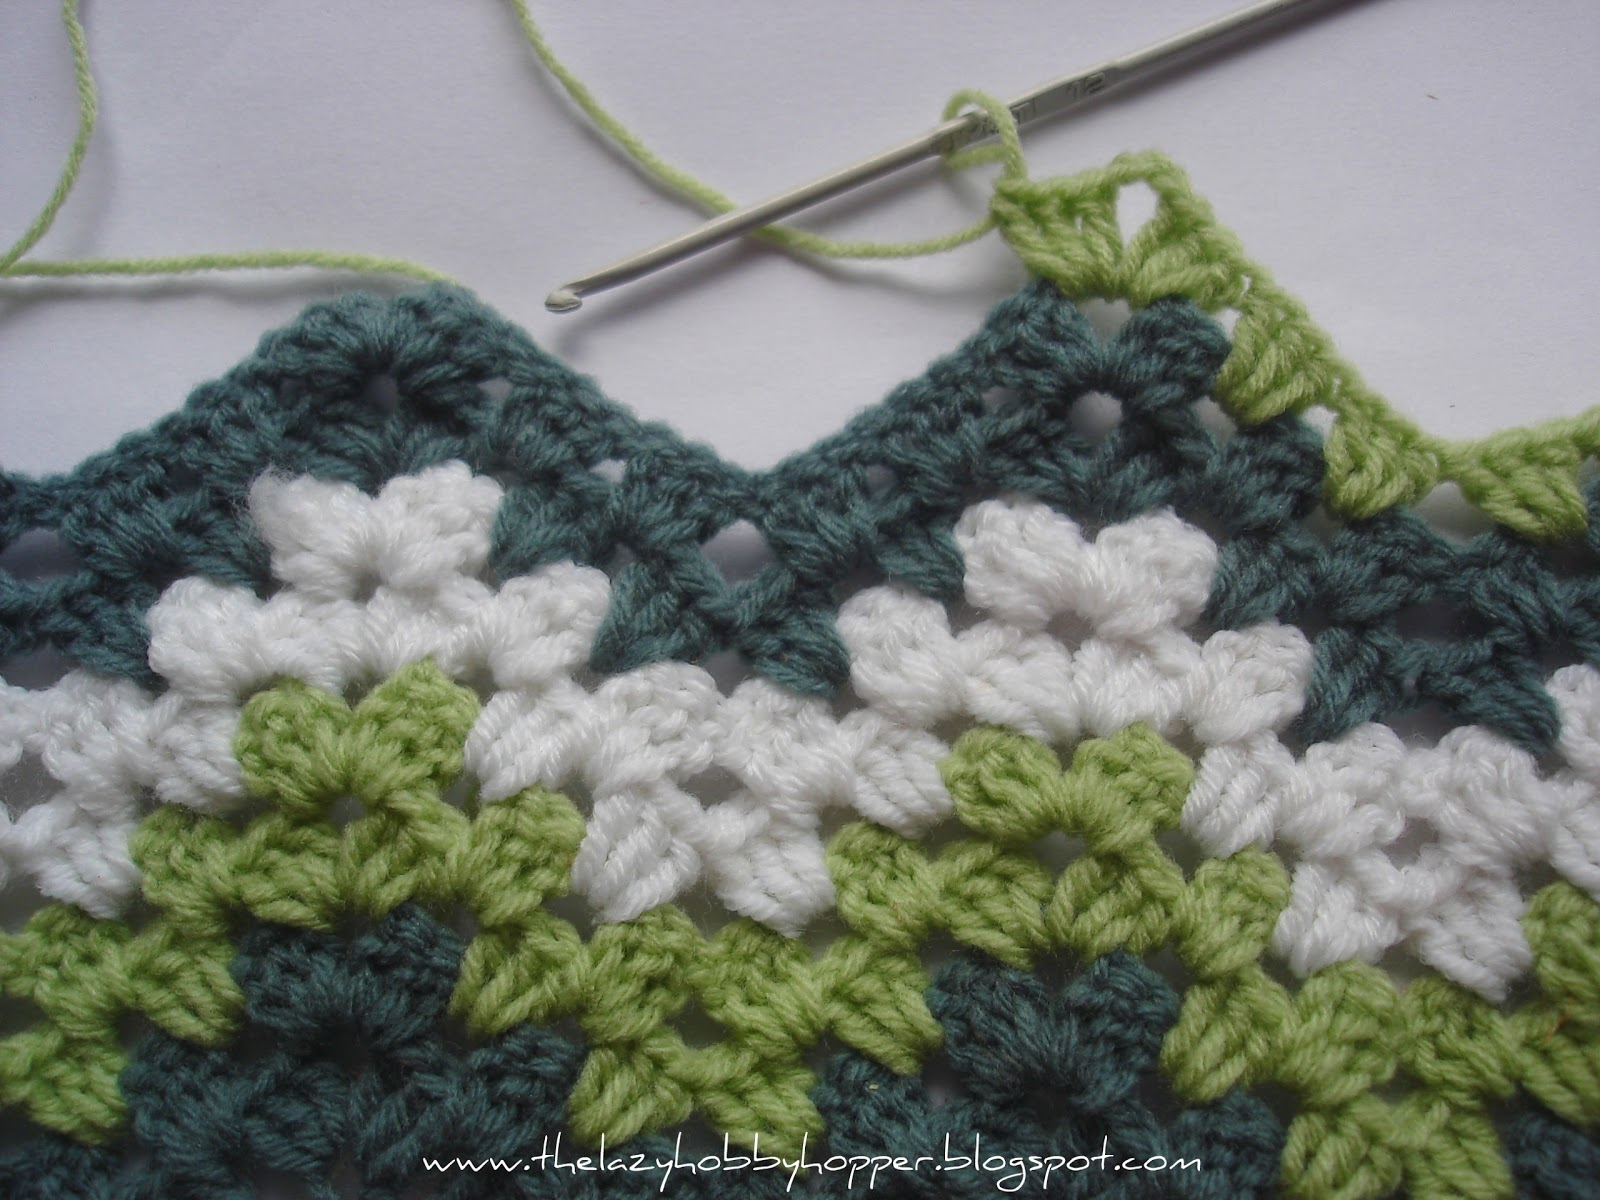 ... many of you who can crochet fairly well may not know how to crochet a